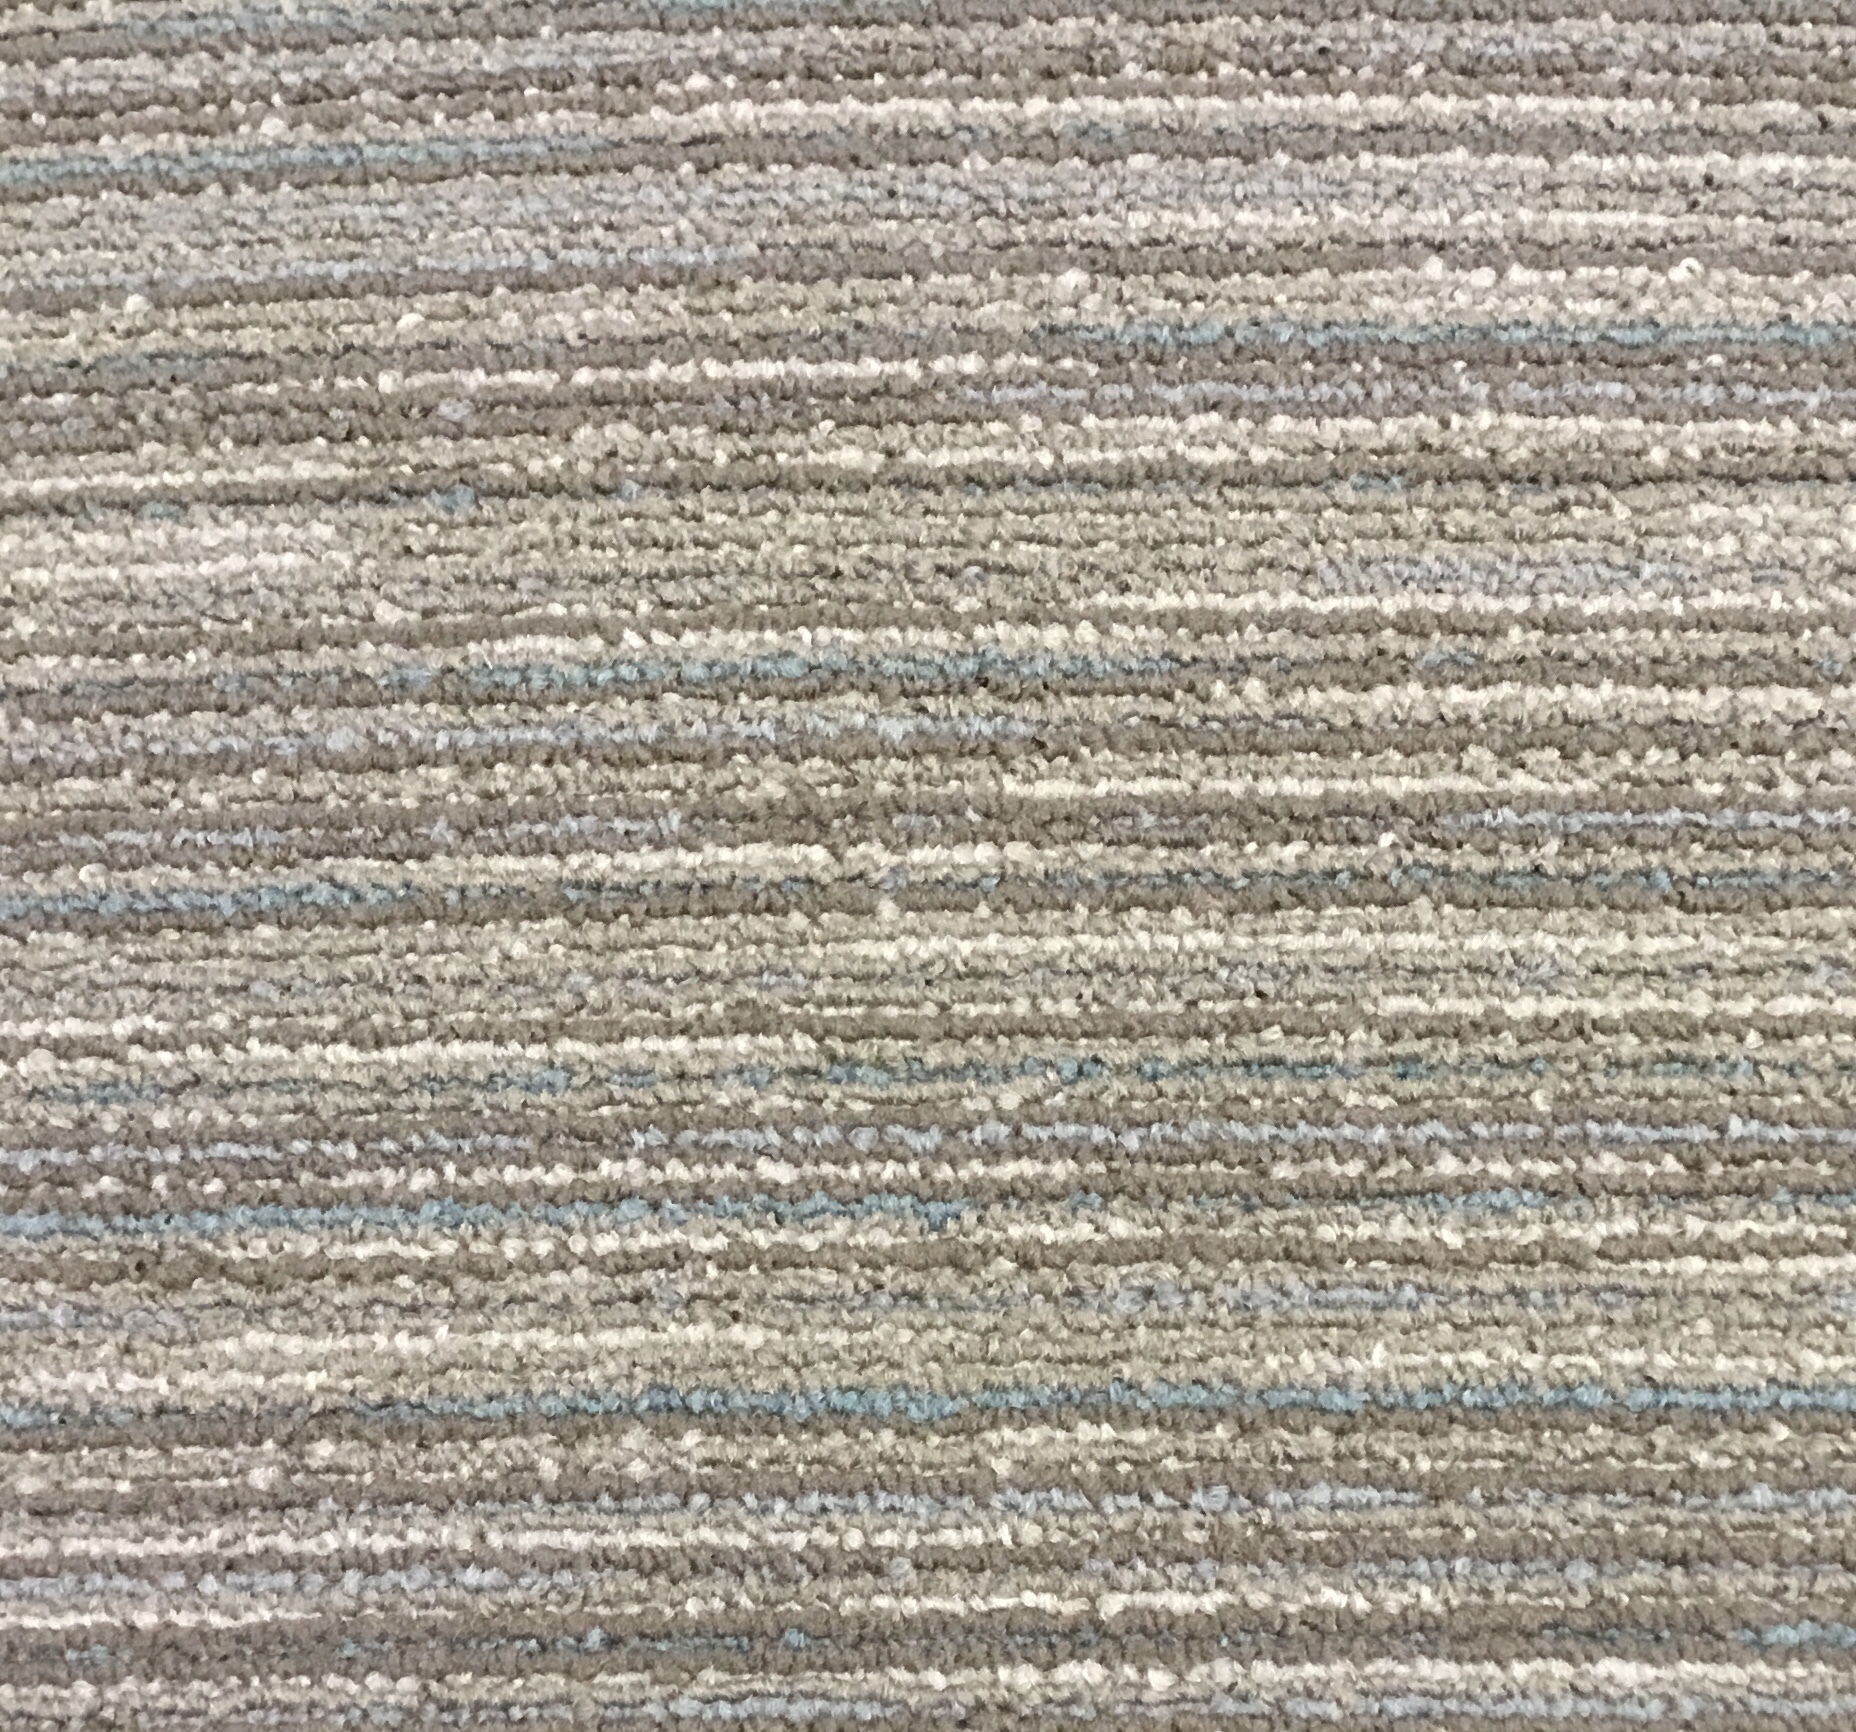 Looking for Interface carpet tiles? Infuse in the color Brown/Blue is an excellent choice. View this and other carpet tiles in our webshop.